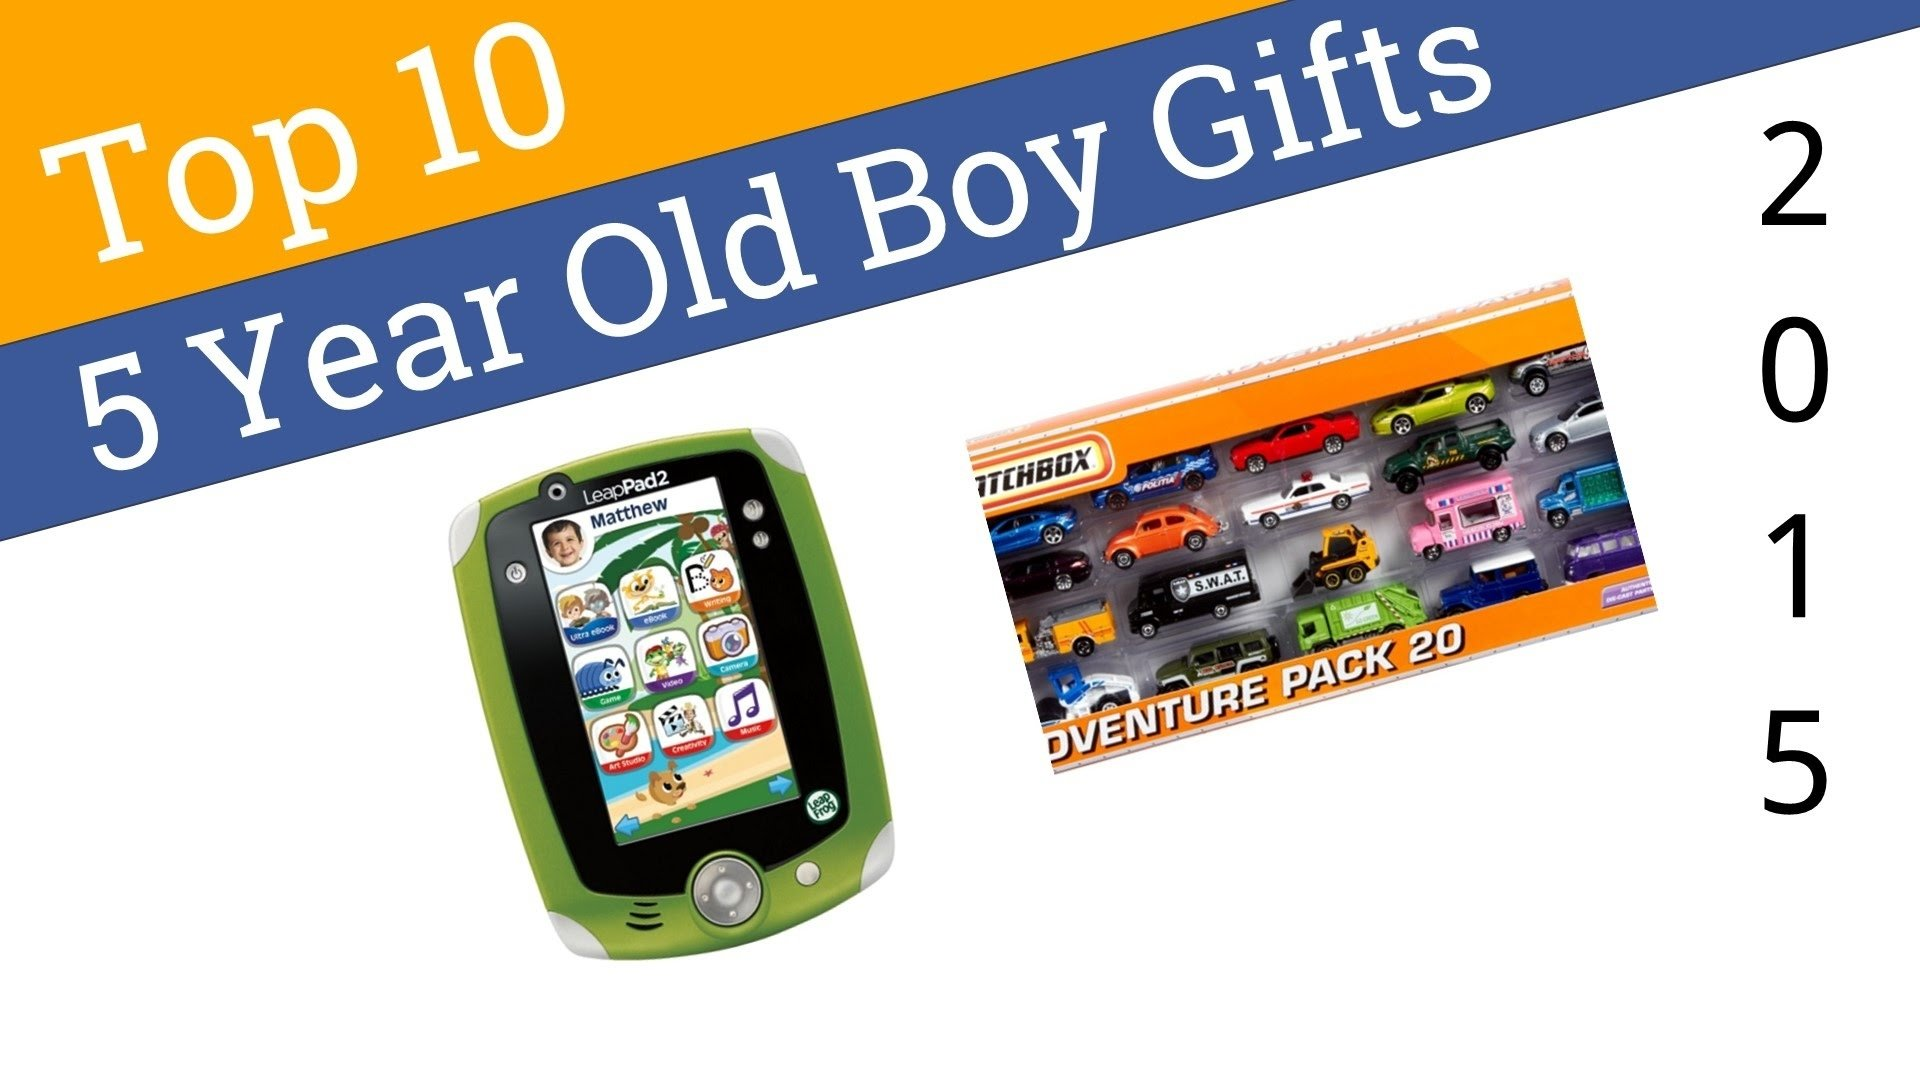 10 Fabulous 5 Year Old Boy Birthday Gift Ideas Best Gifts